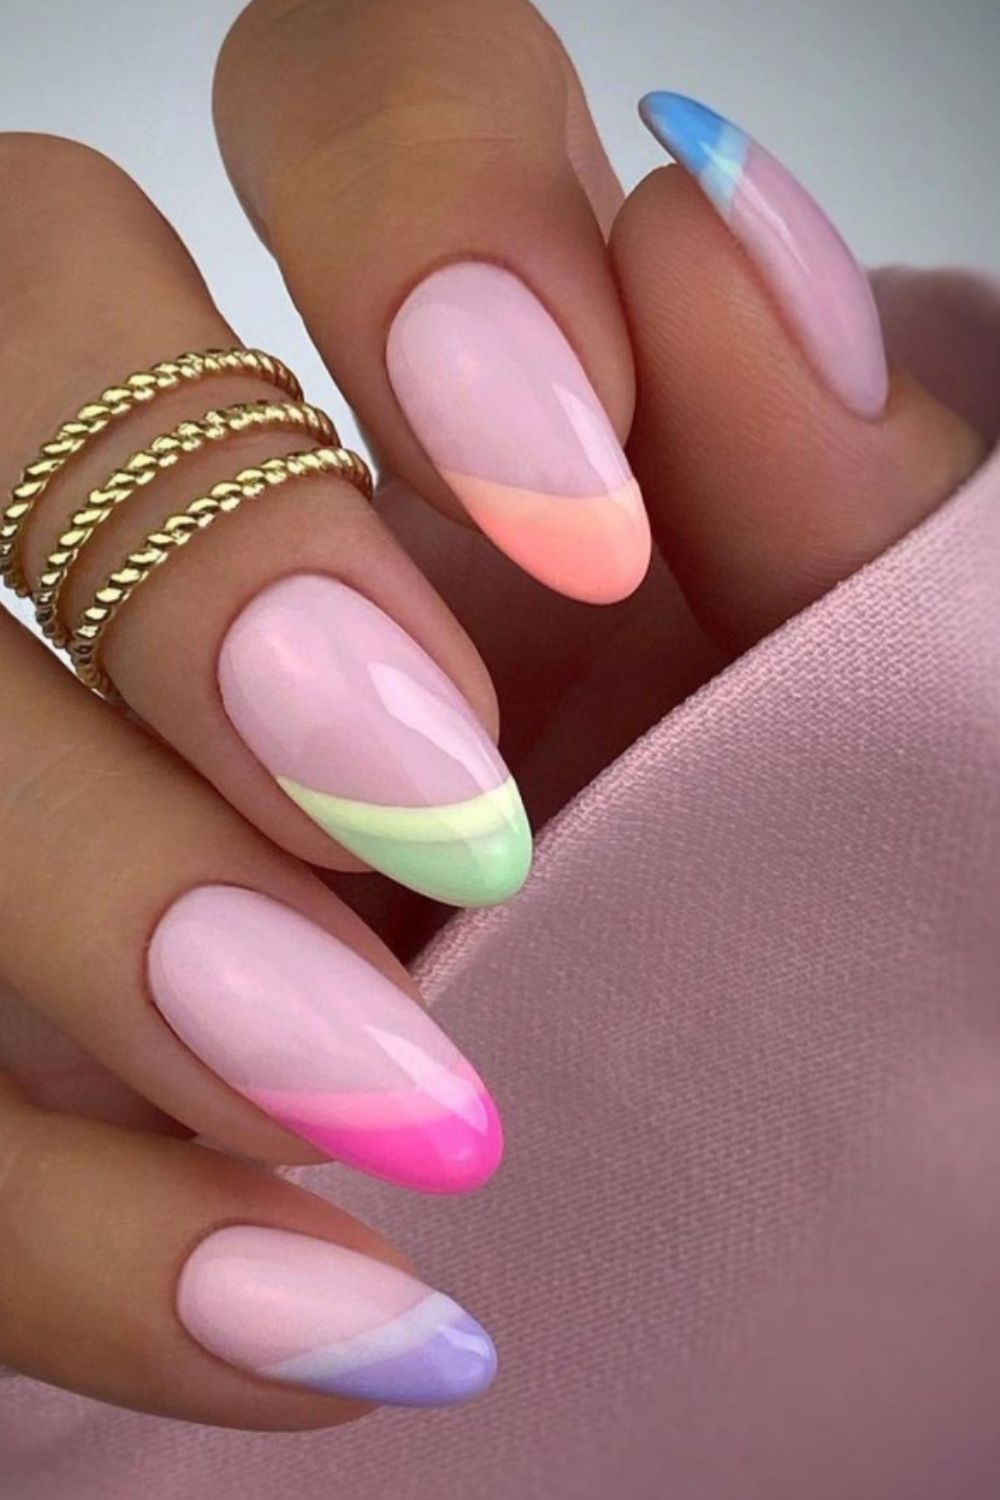 Nails 2021 trends spring